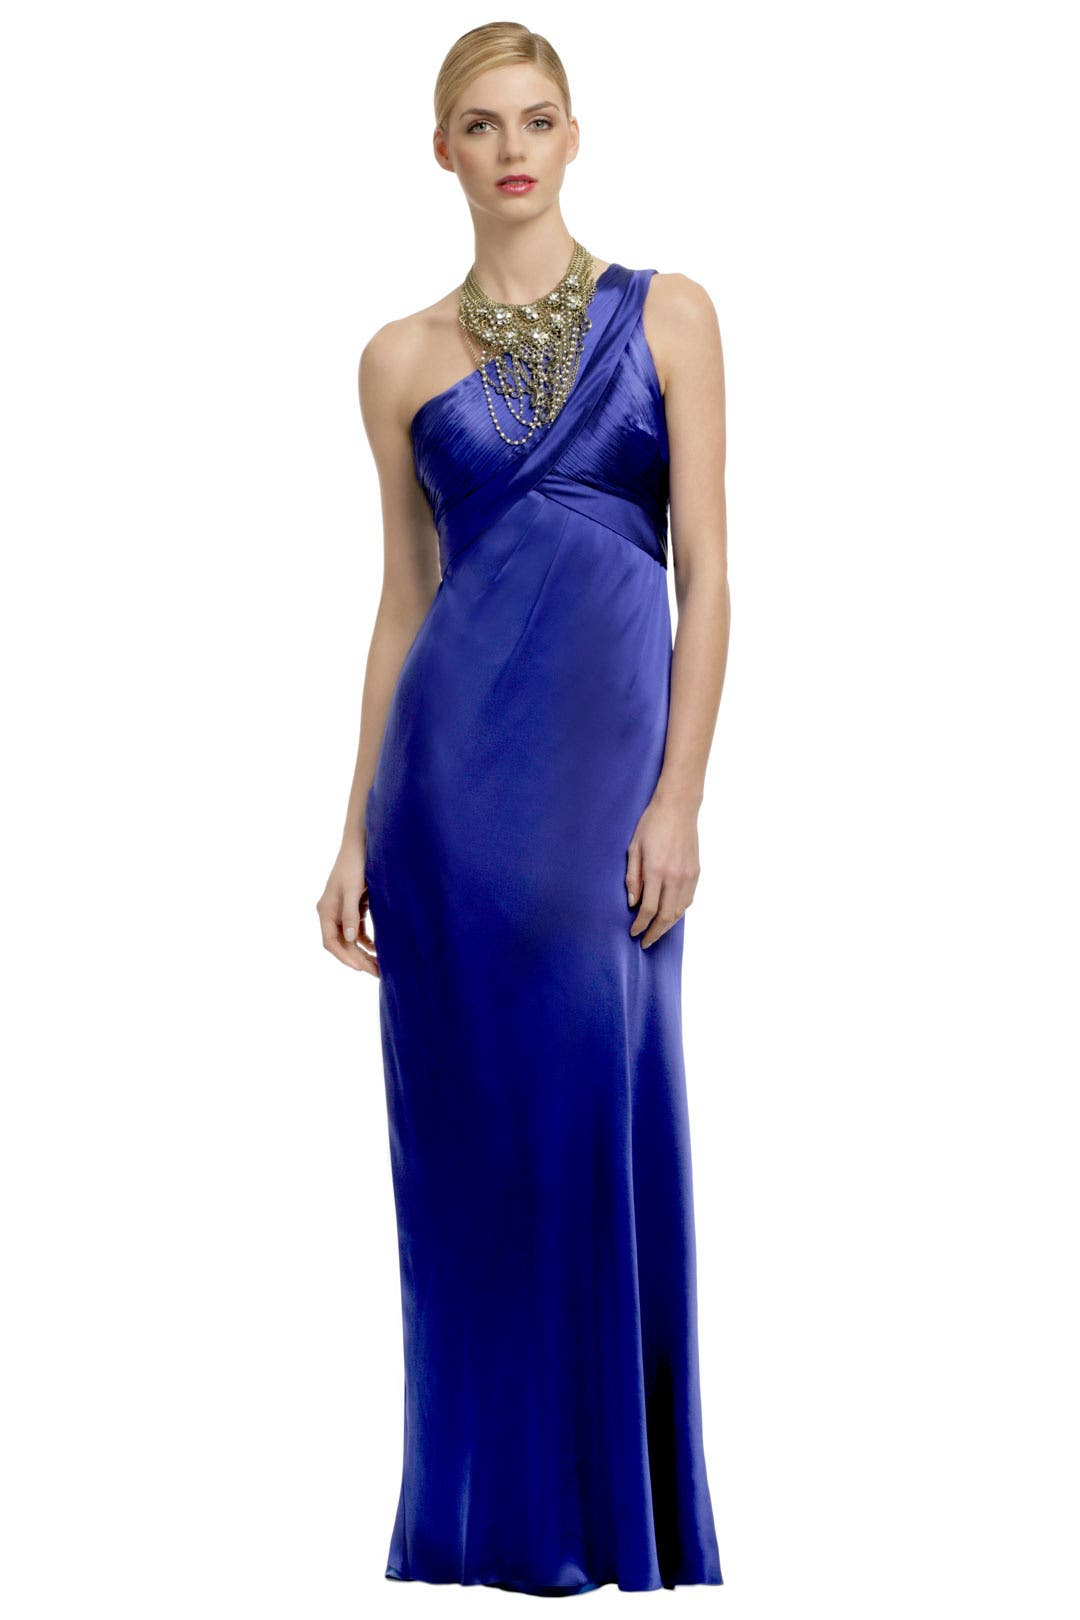 Crystal Blue Waters Gown by Carlos Miele